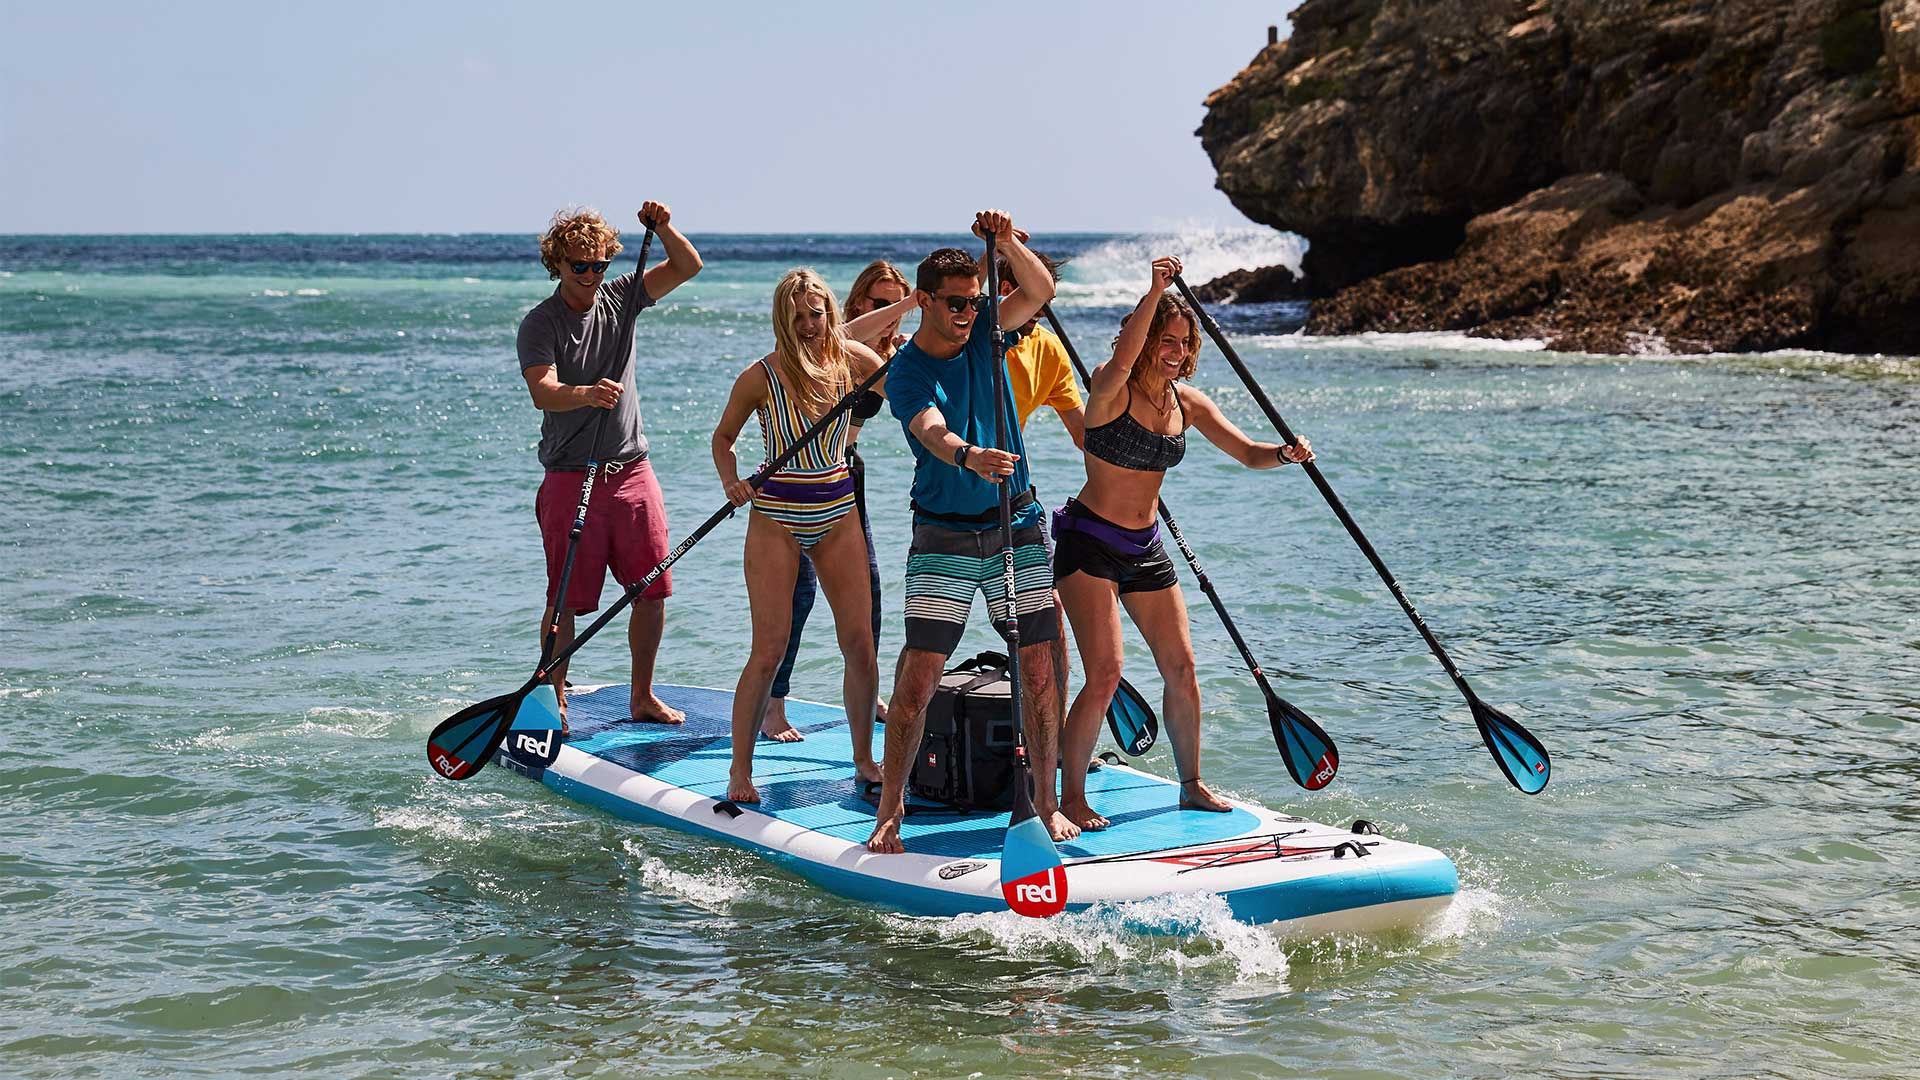 redpaddleco-170-xl-ride-inflatable-paddle-board-desktop-gallery-2